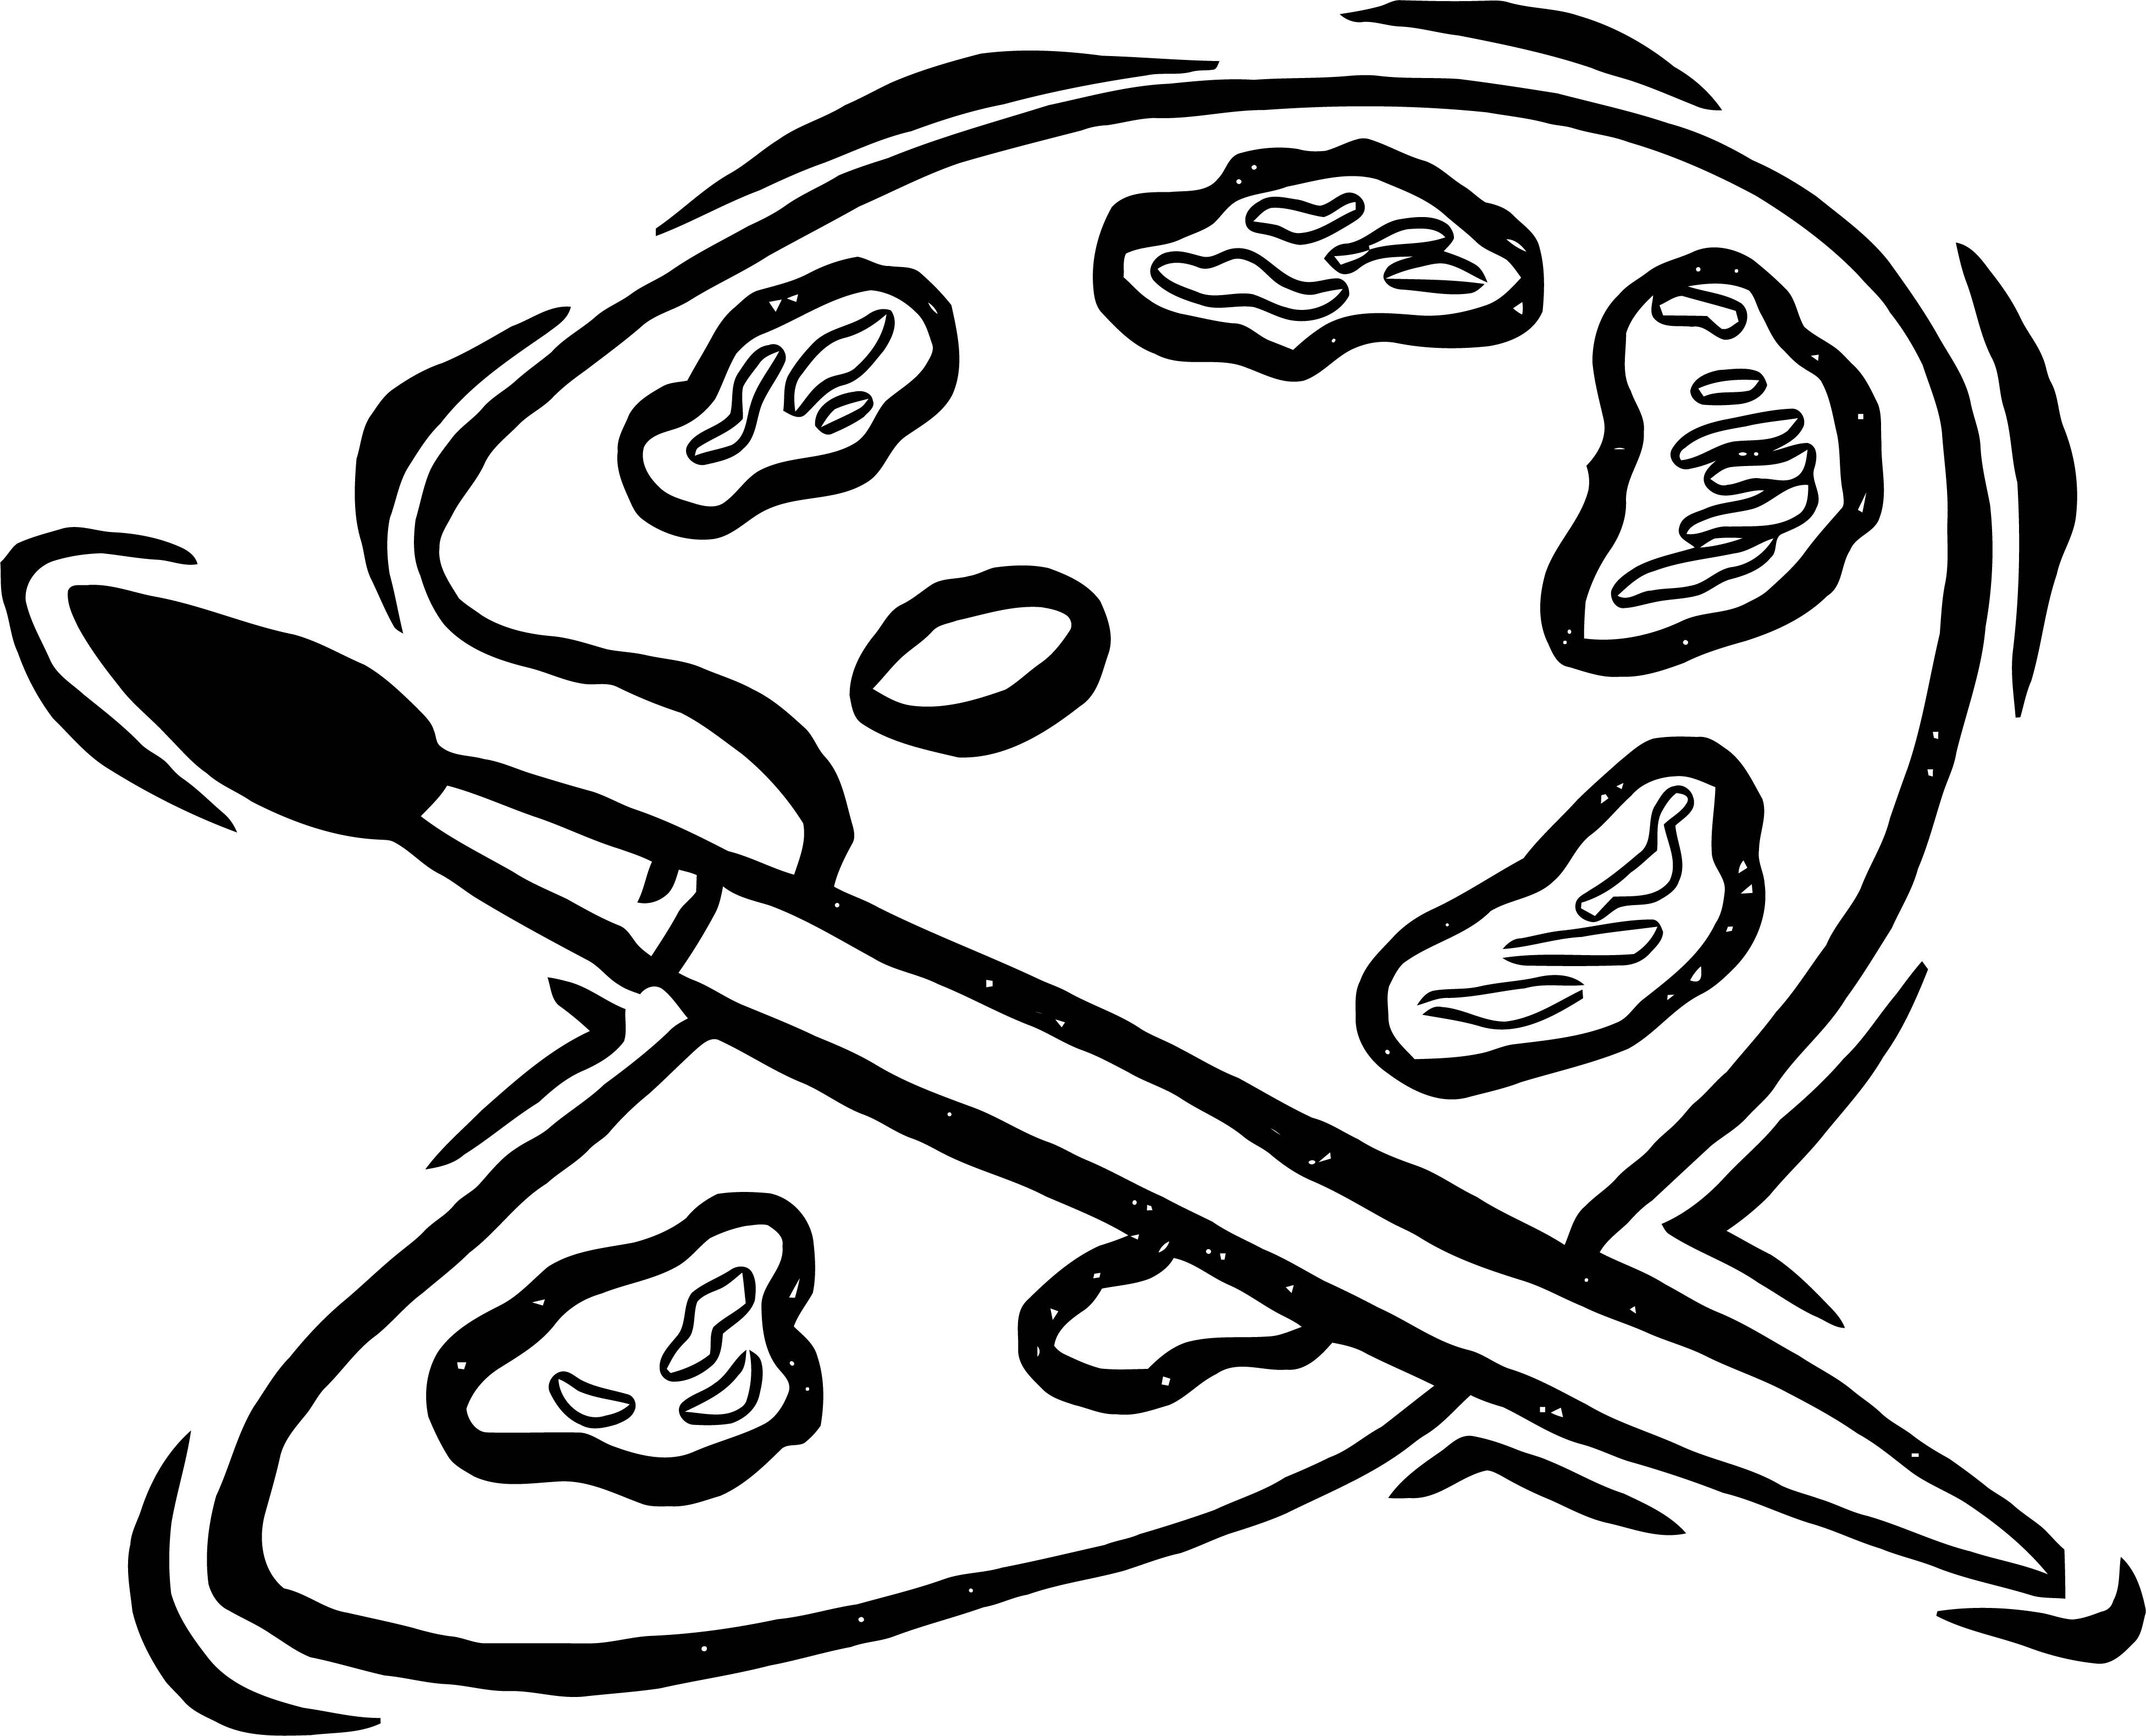 Painter Brush Tablet Coloring Page